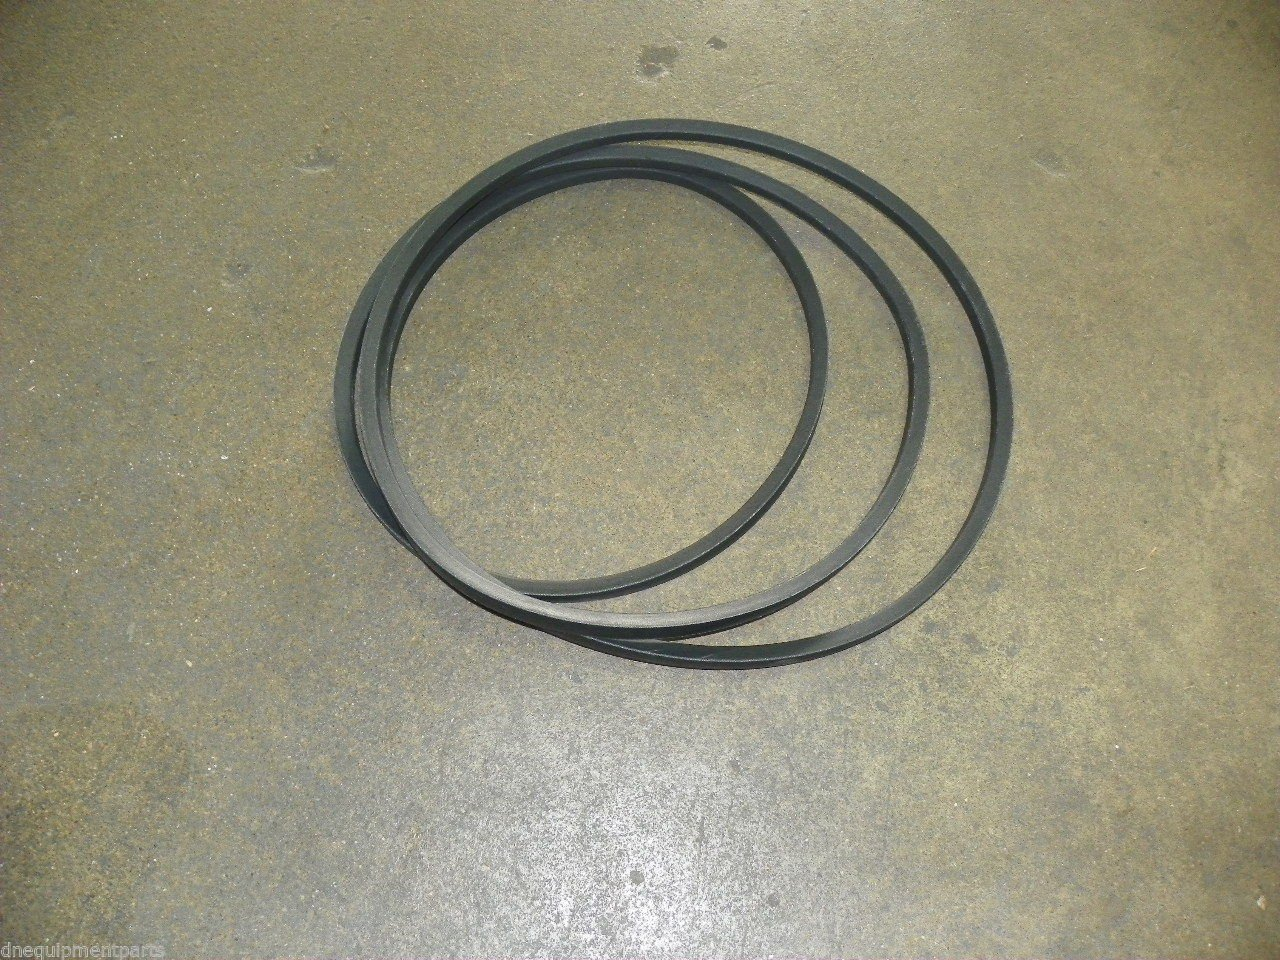 1 Band 89 Length 89 Length Aramid D/&D PowerDrive 12X8972 Rotary Kevlar Replacement Belt